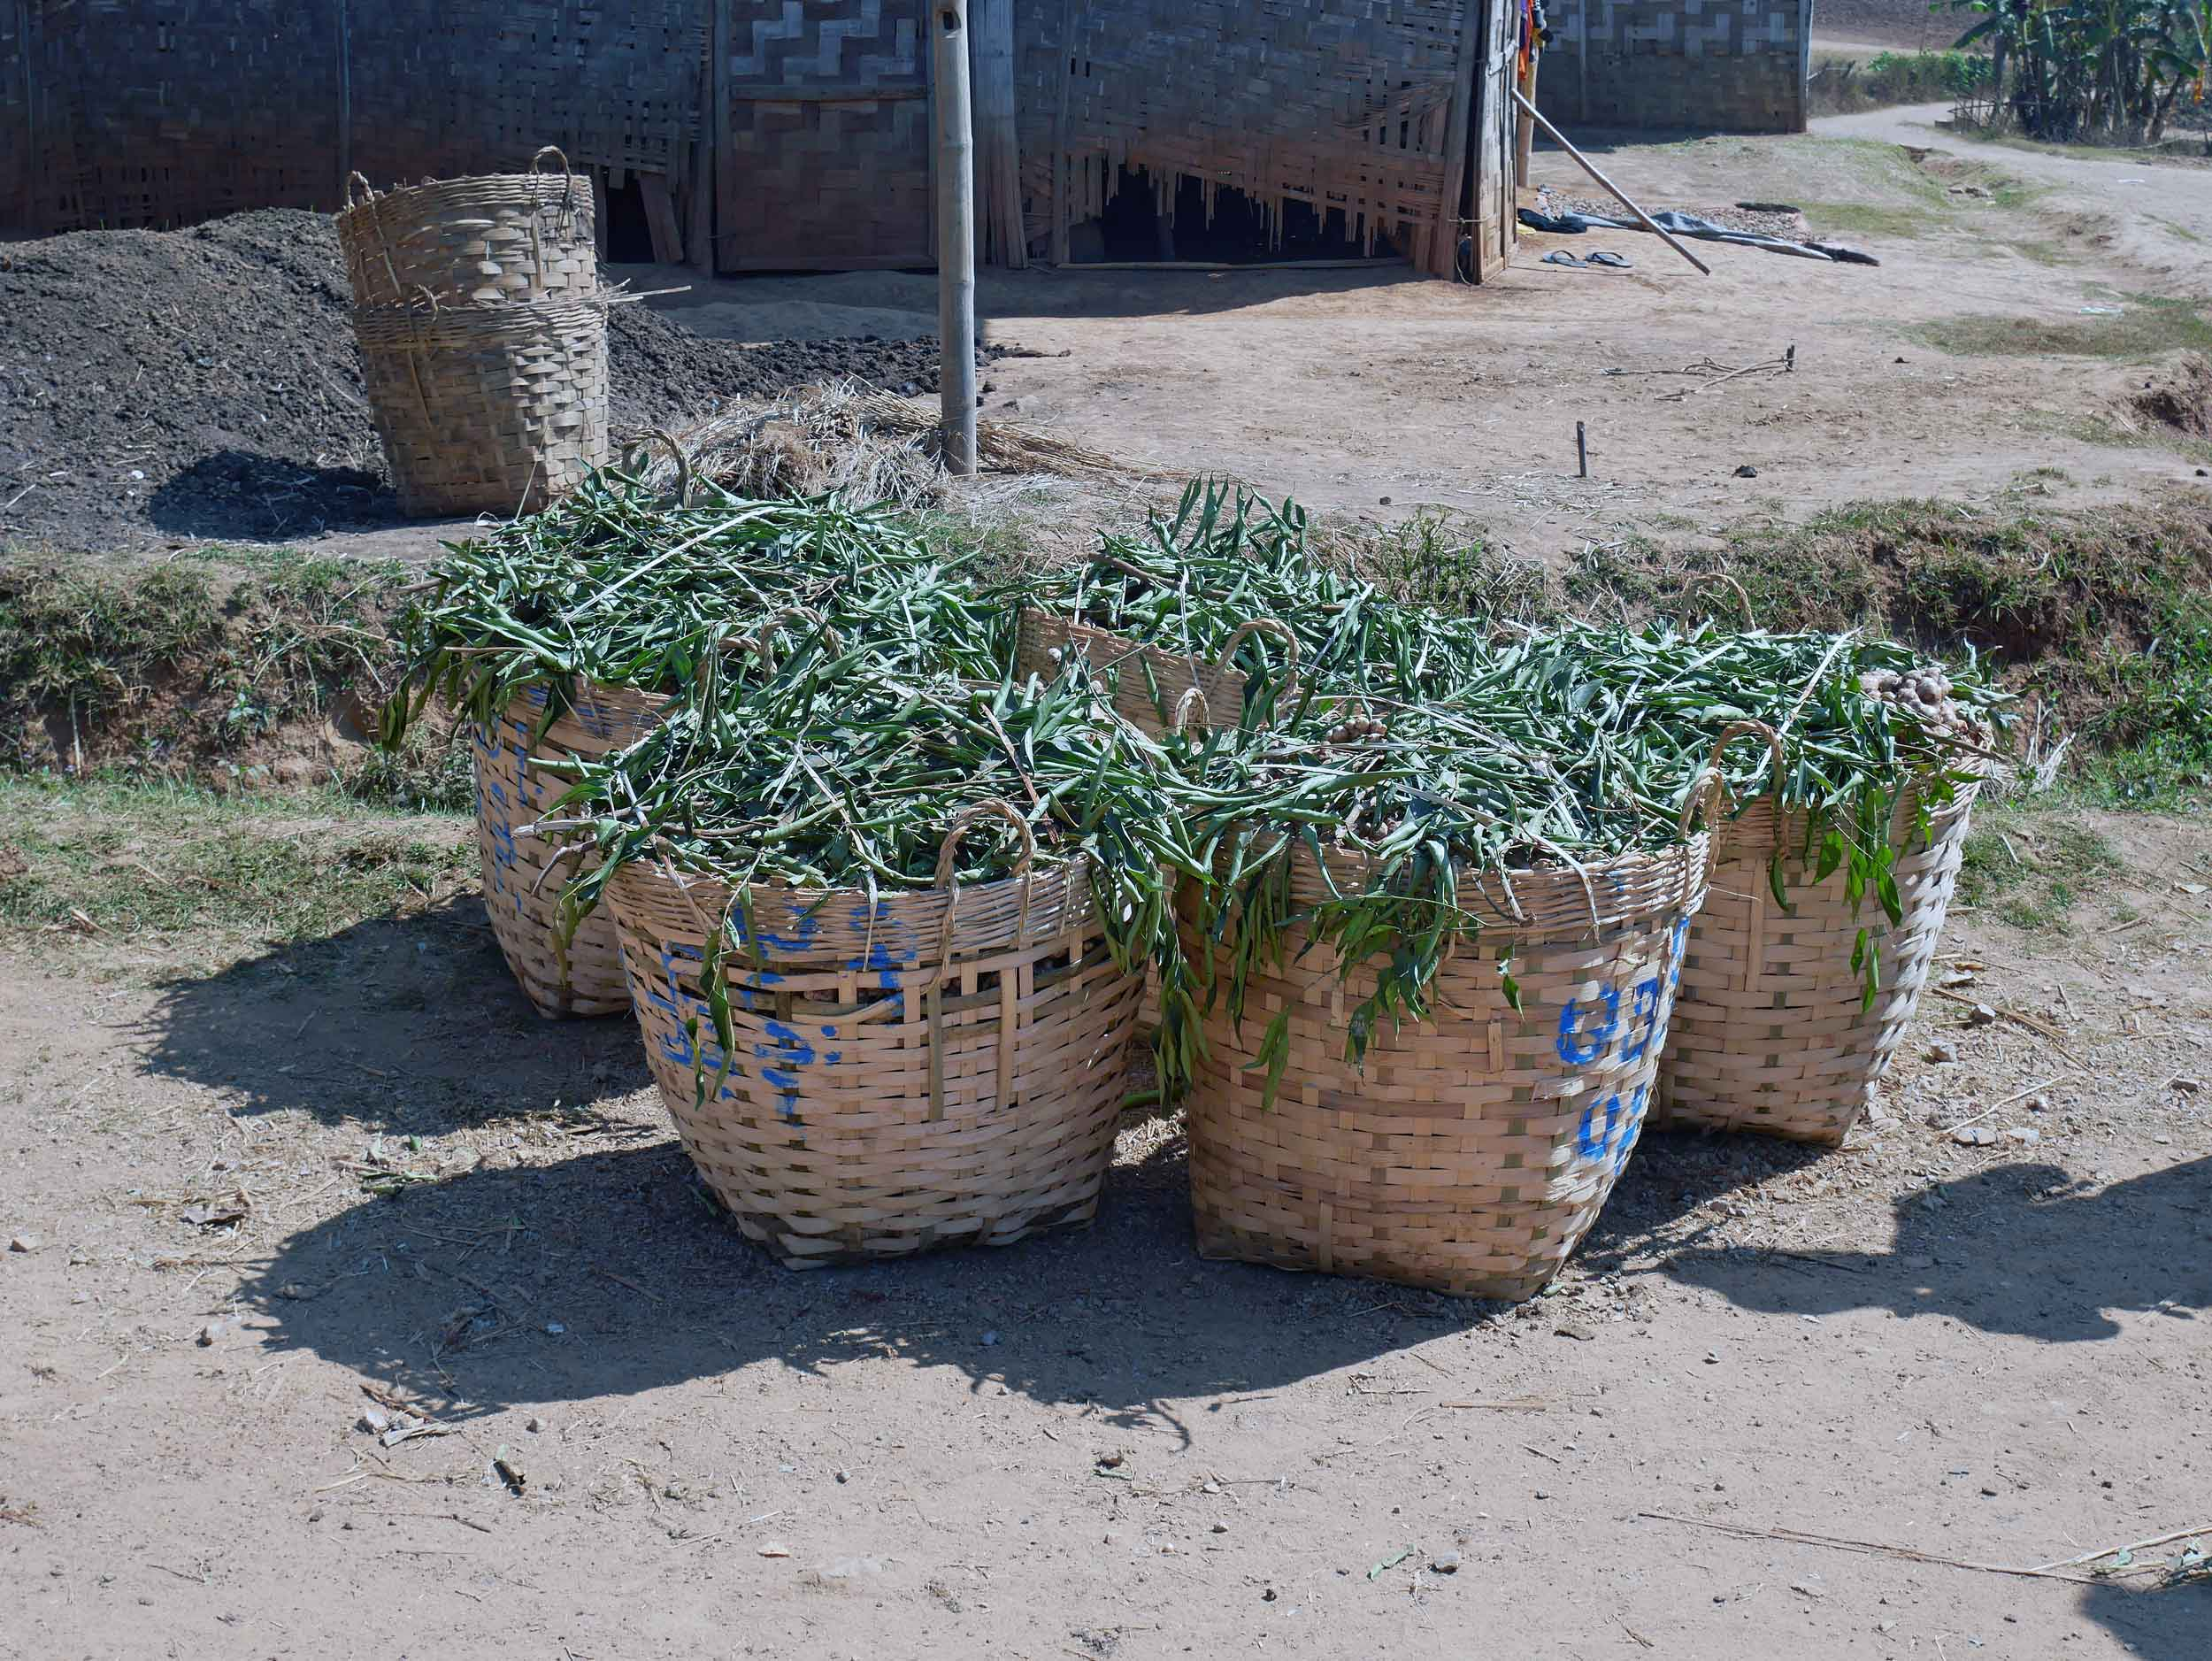 Baskets of harvested ginger, another important crop in this area, lined the trails (Feb 20).